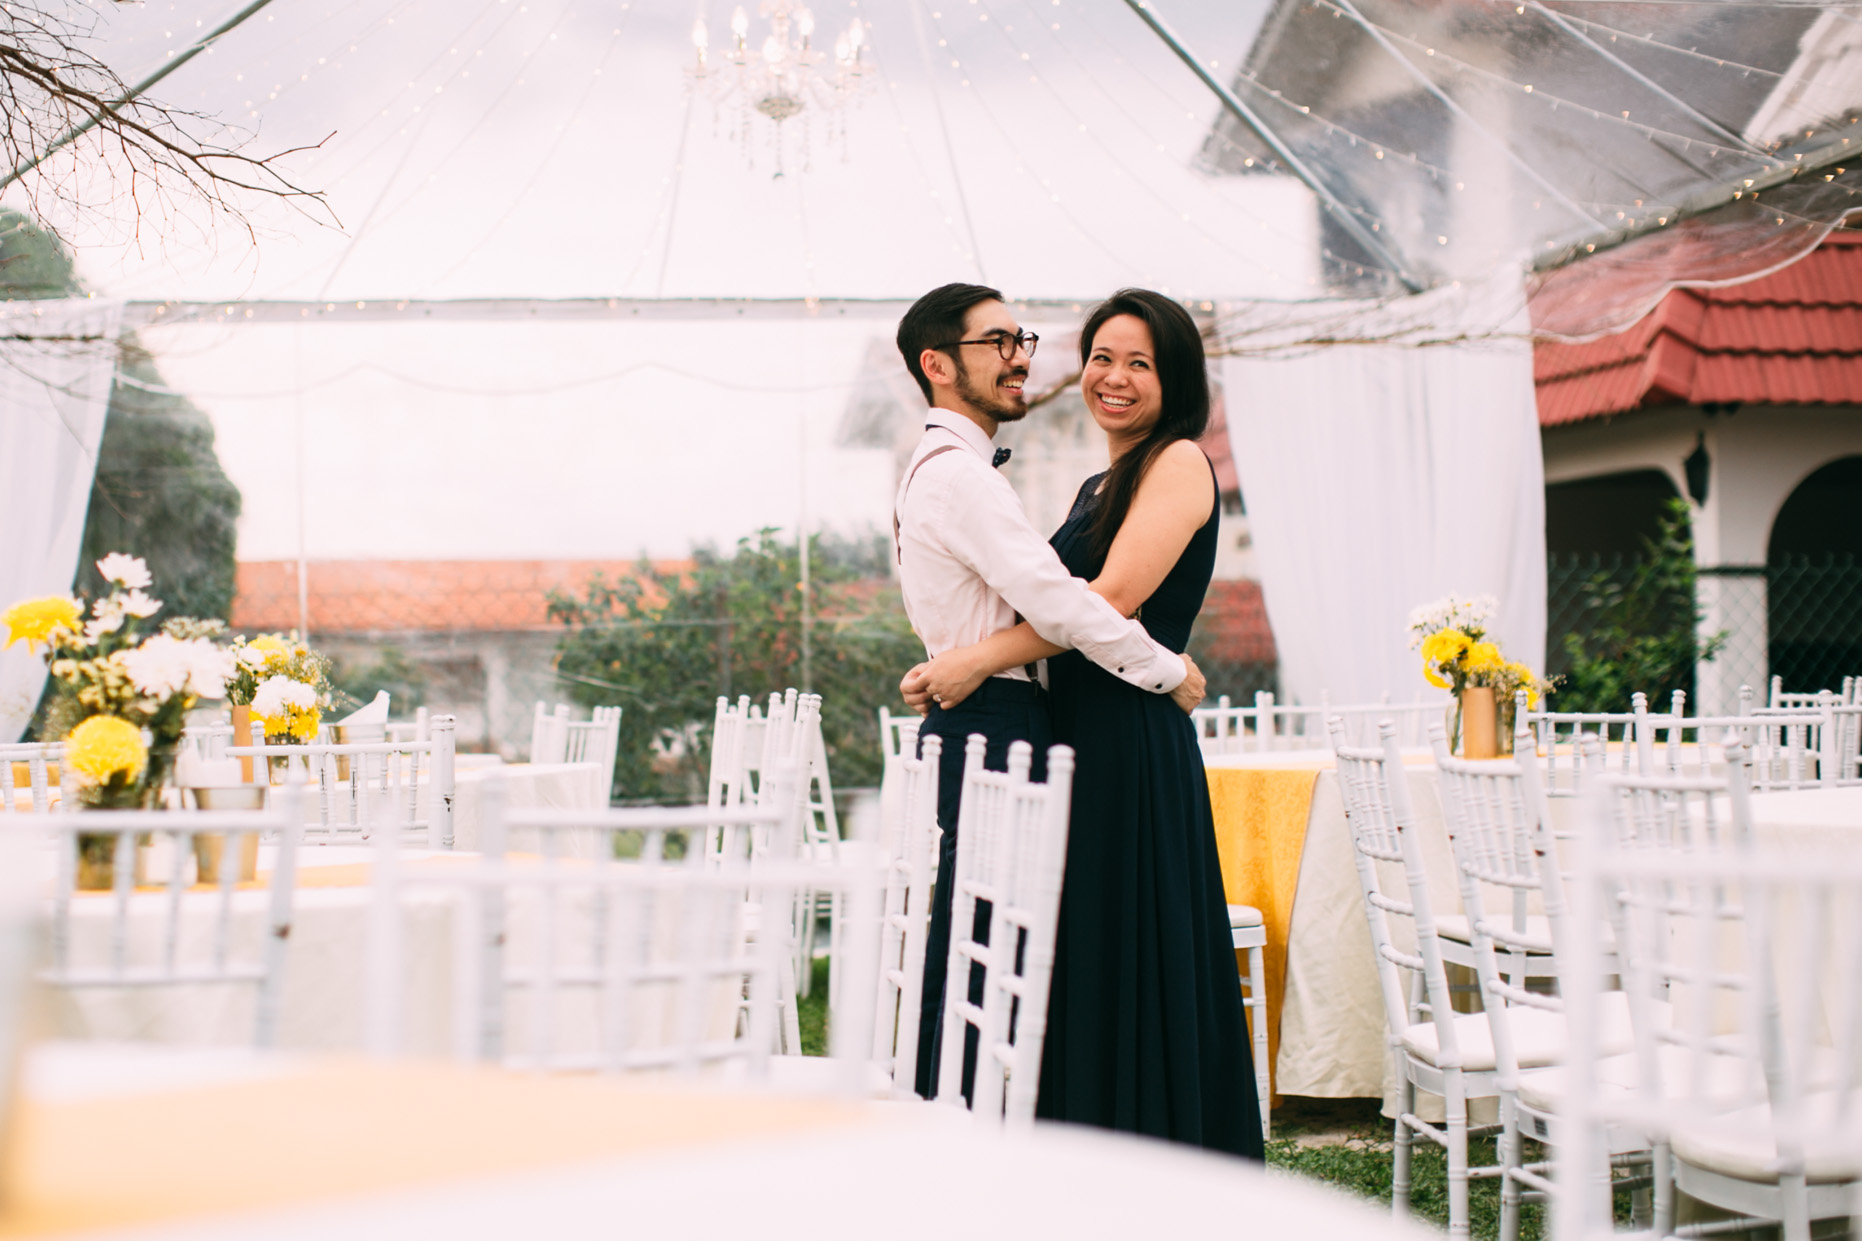 82-hellojanelee-sam grace-malaysia-wedding-day